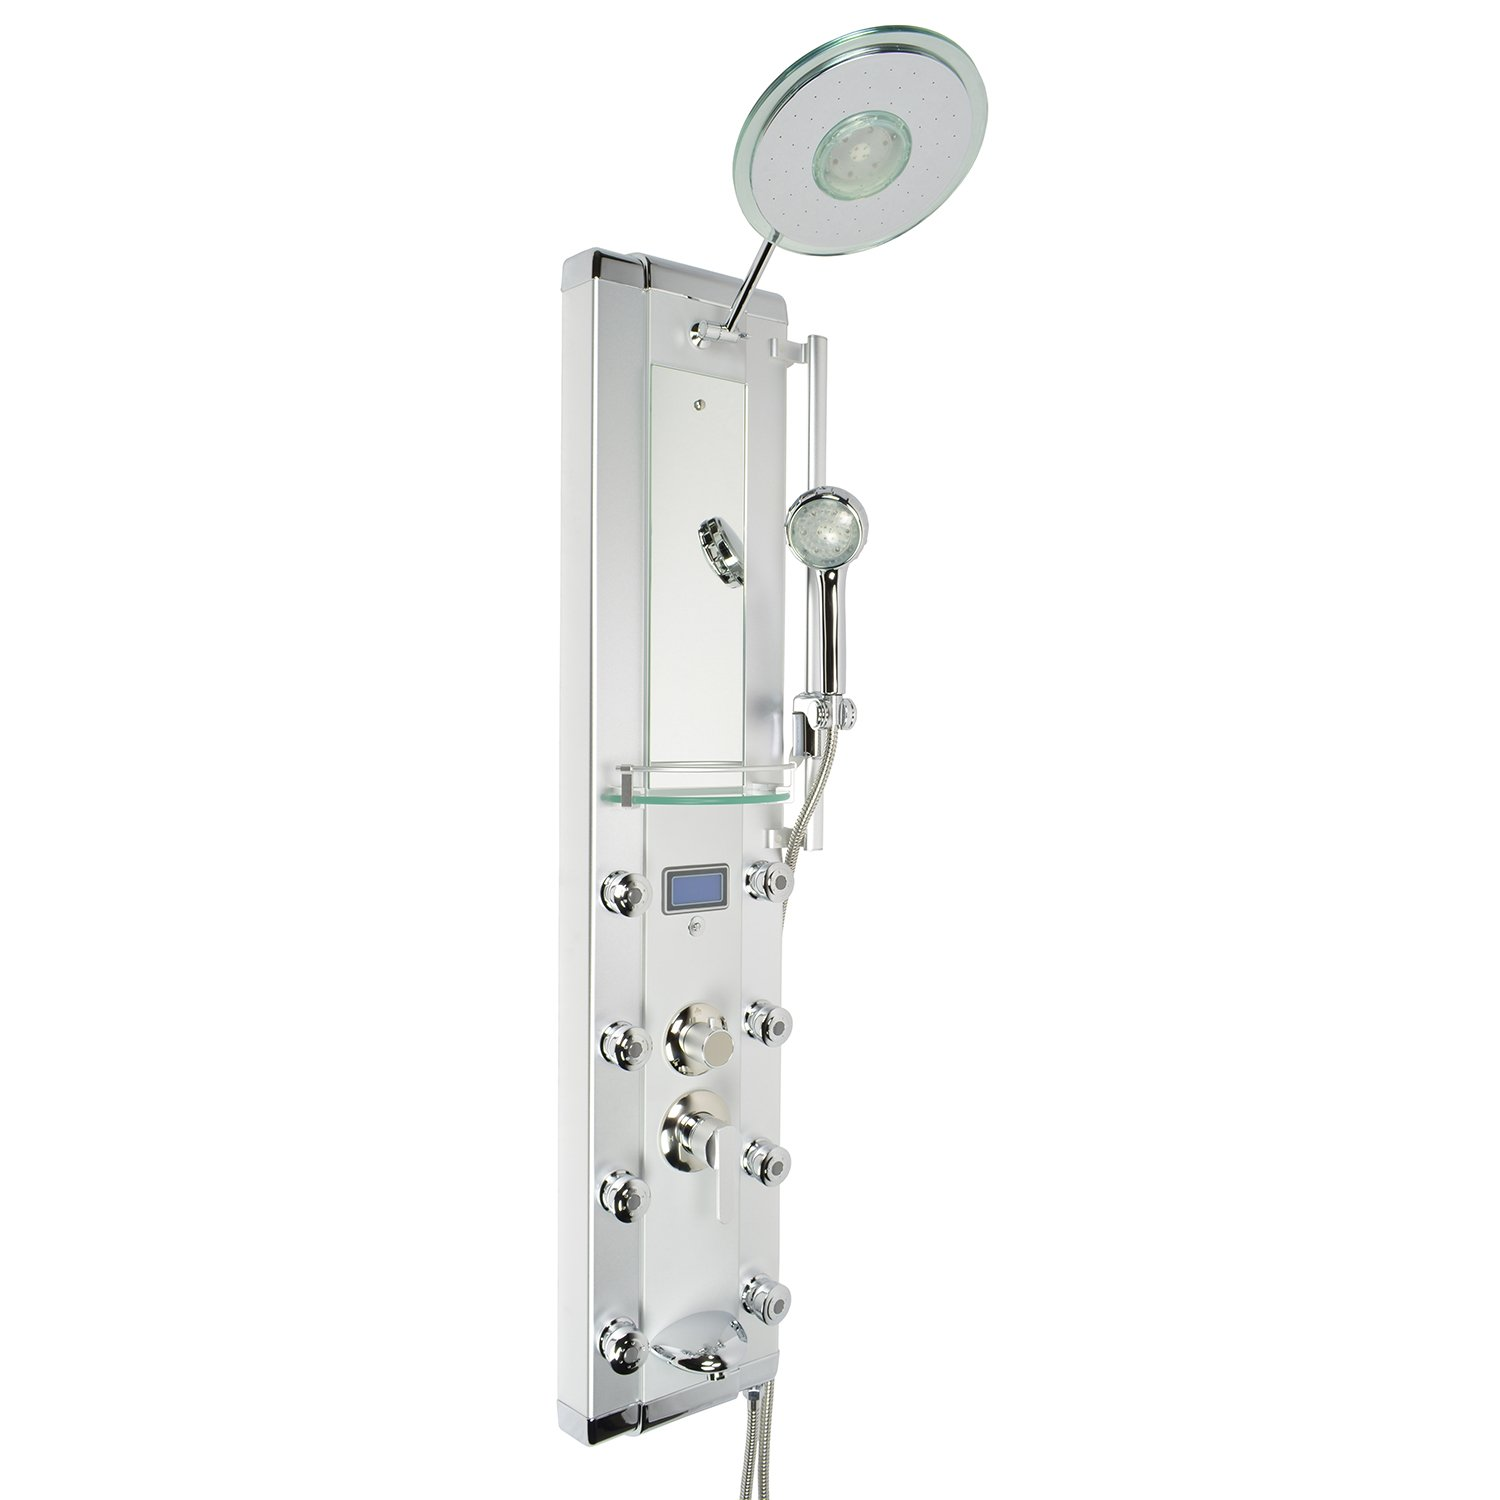 Blue Ocean 52 Aluminum Spa33d Shower Panel Tower With Rainfall Shower Head